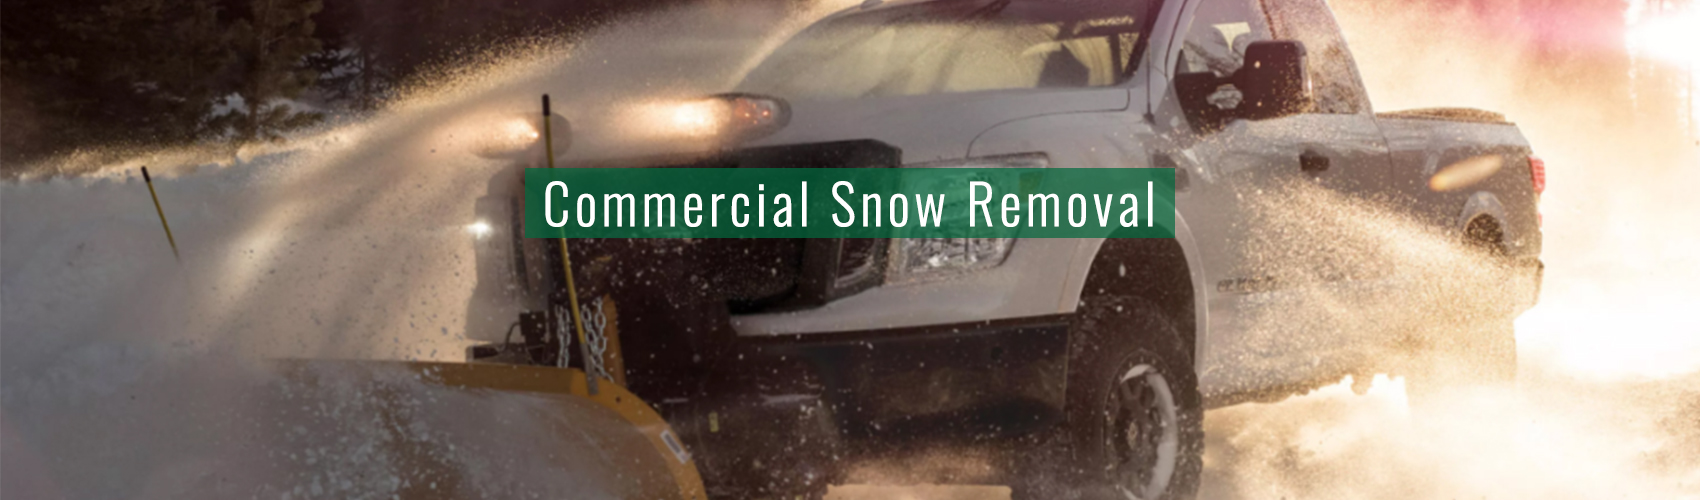 Commercial Snow Removal at Complete Landscaping Service